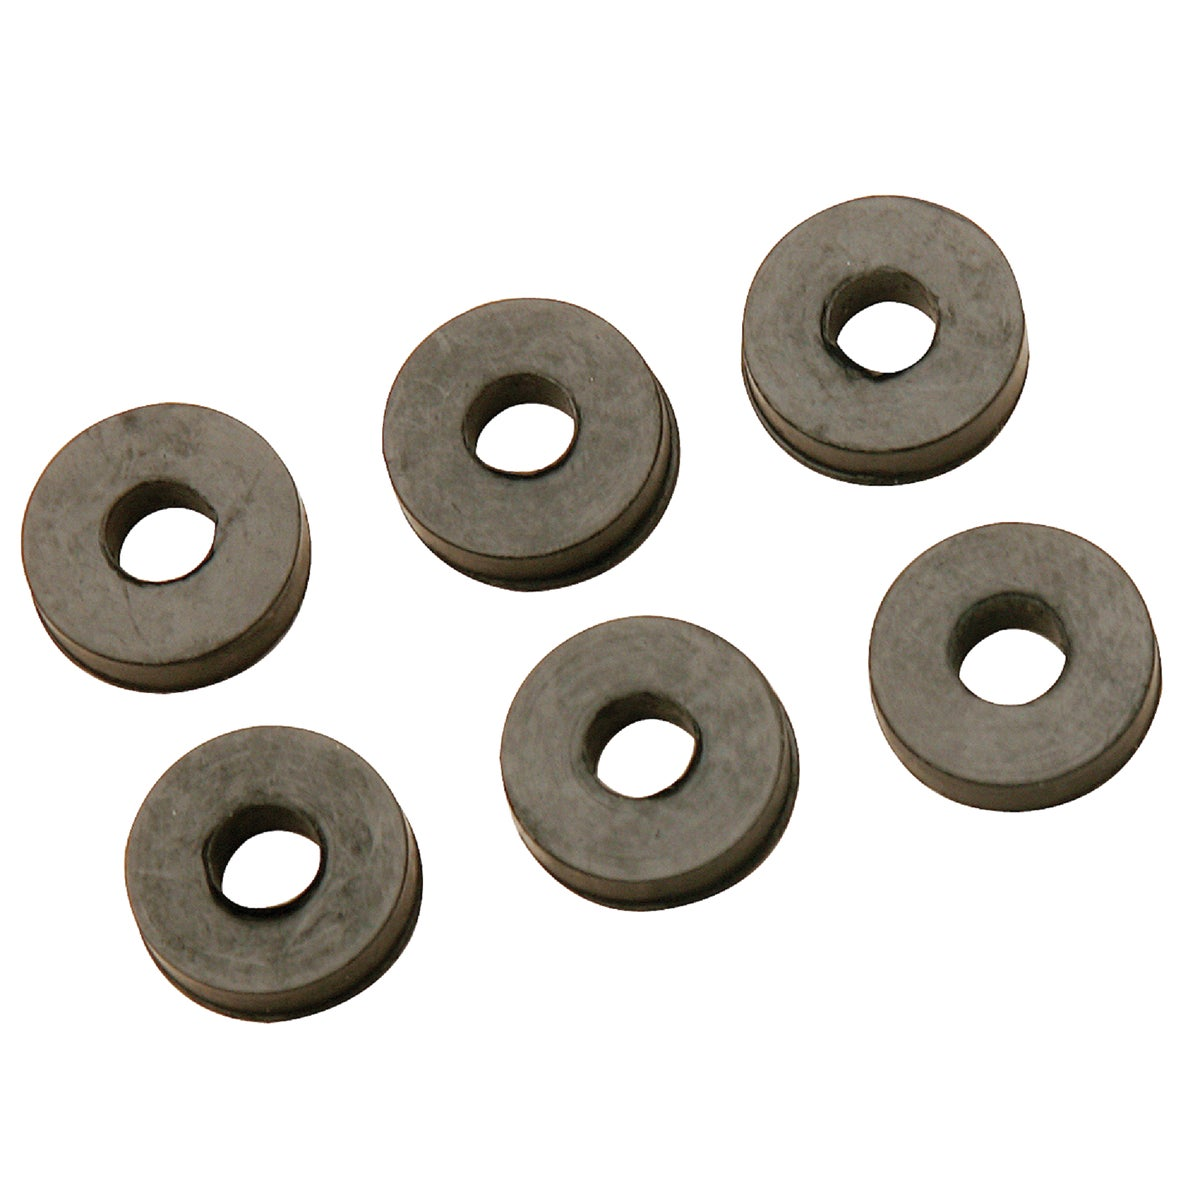 "6PK 3/8""L FLAT WASHER - 435283 by Plumb Pak/keeney Mfg"